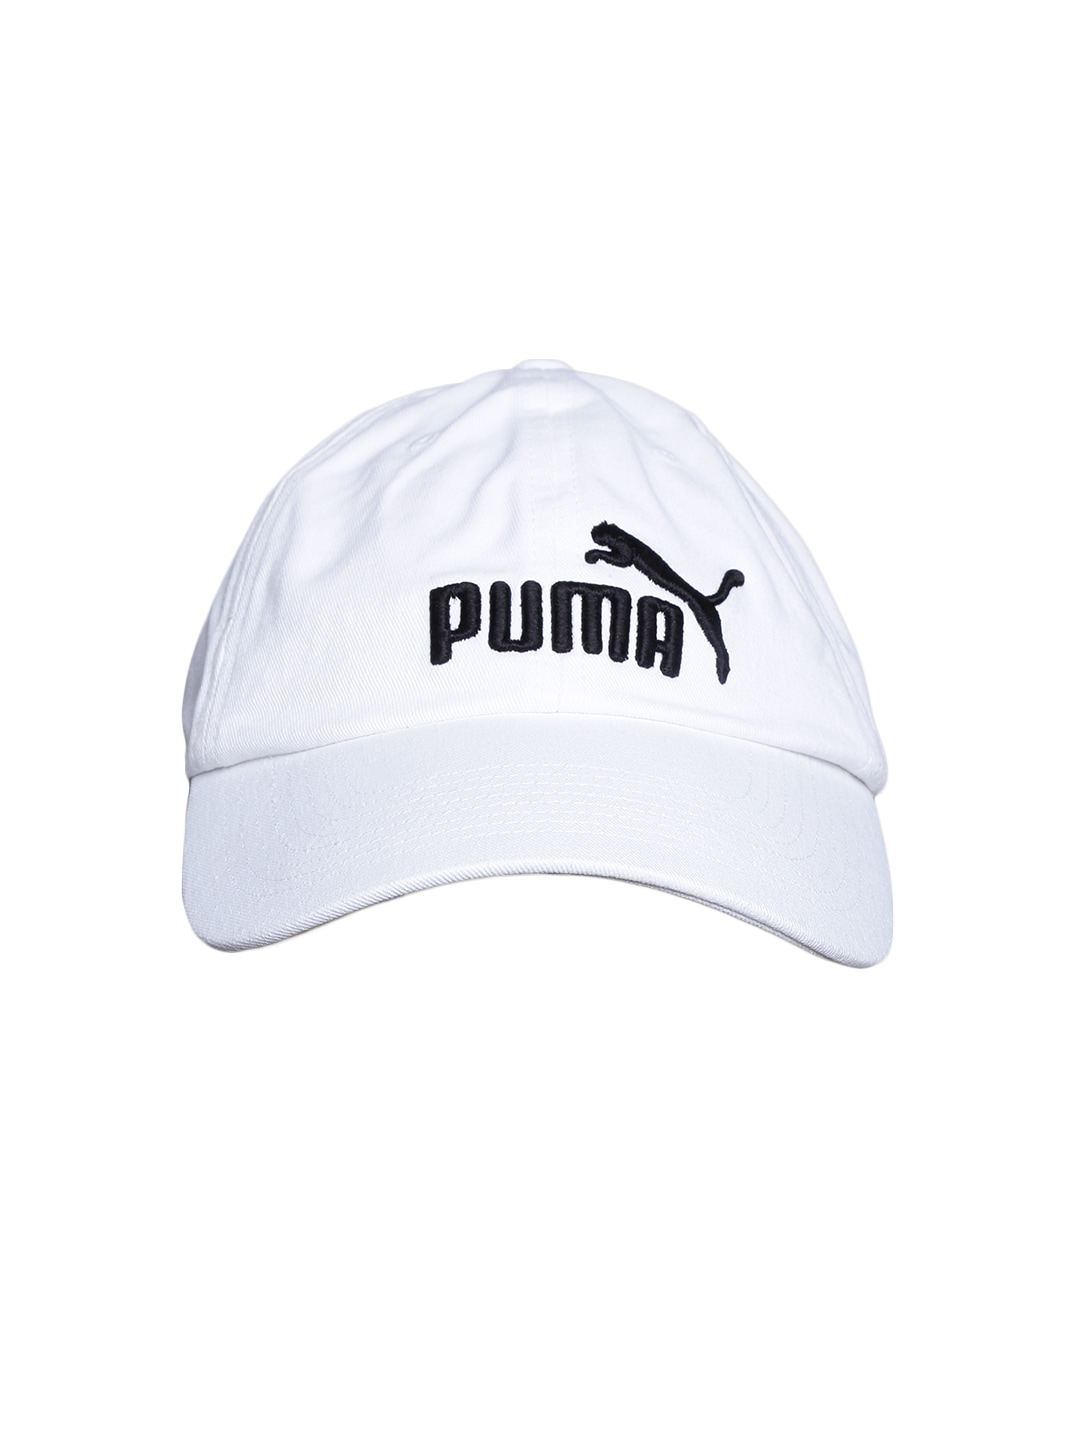 ... coupon code for puma ferrari caps buy puma ferrari caps online in india  f5a4a 1c148 844ea9be6f92